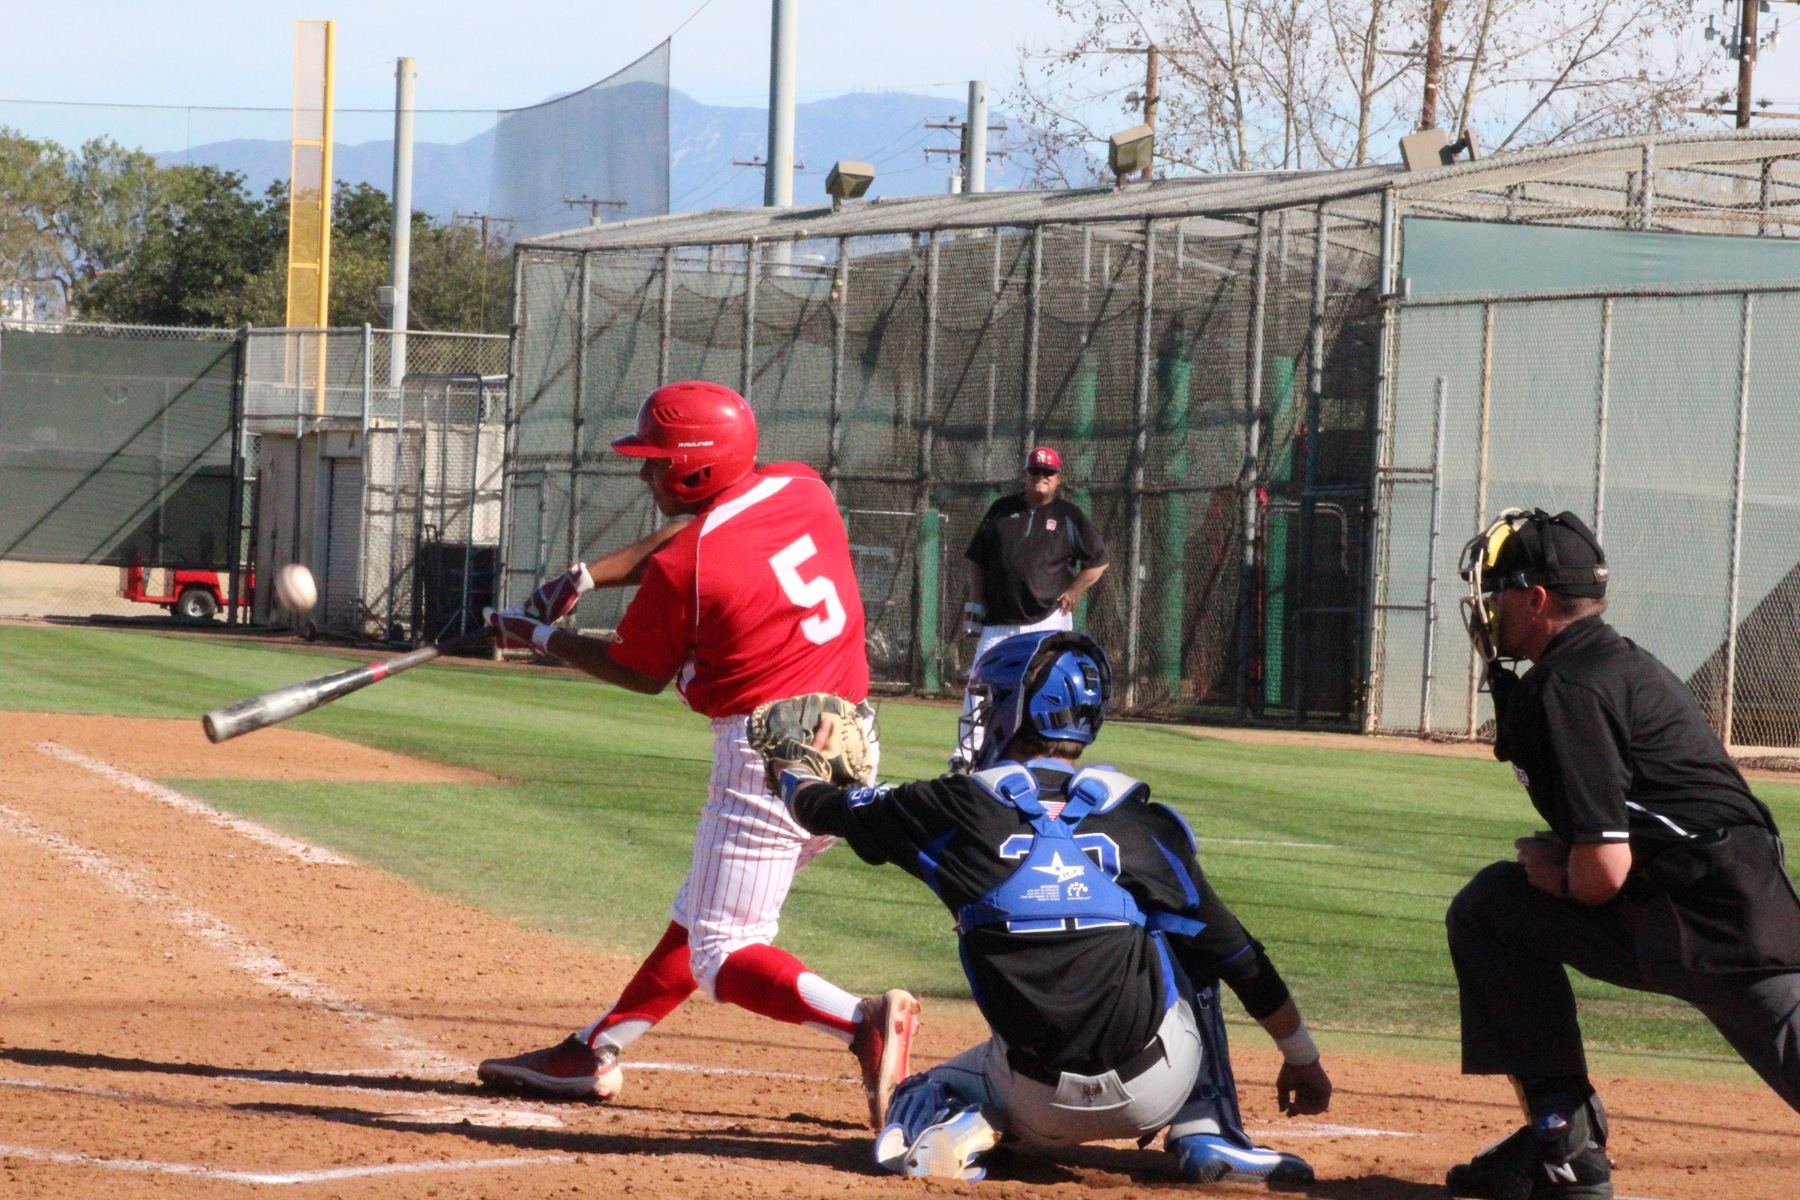 Gonzalez's Grand Slam Propels Dons to 11-7 Win